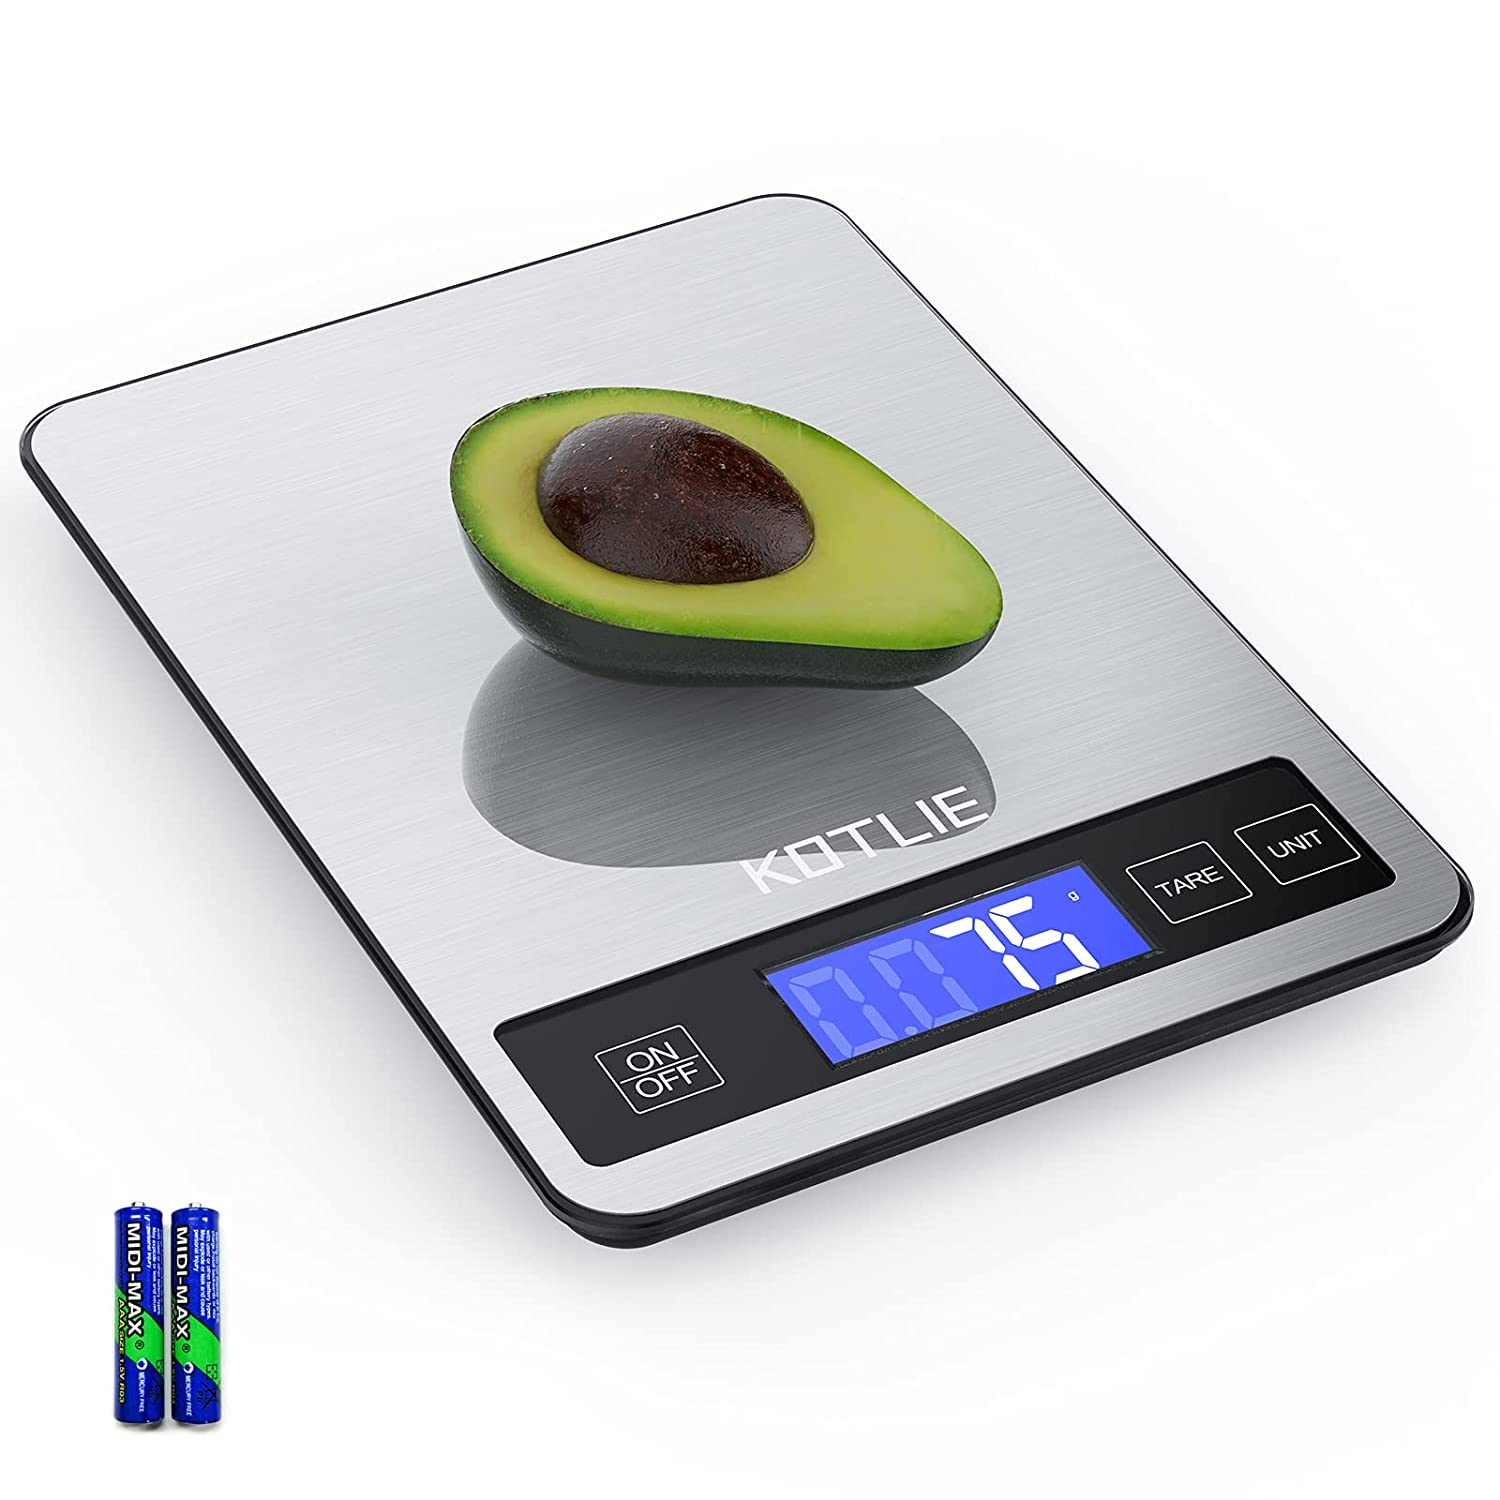 Food Scale, KOTLIE 33lb/15kg Digital Kitchen Scale Weight Grams and Oz for Baking & Cooking, 1g/0.05oz Accurate Stainless Steel Precision Scales with Tare Function, Easy to Clean(2AAA Battery Include)